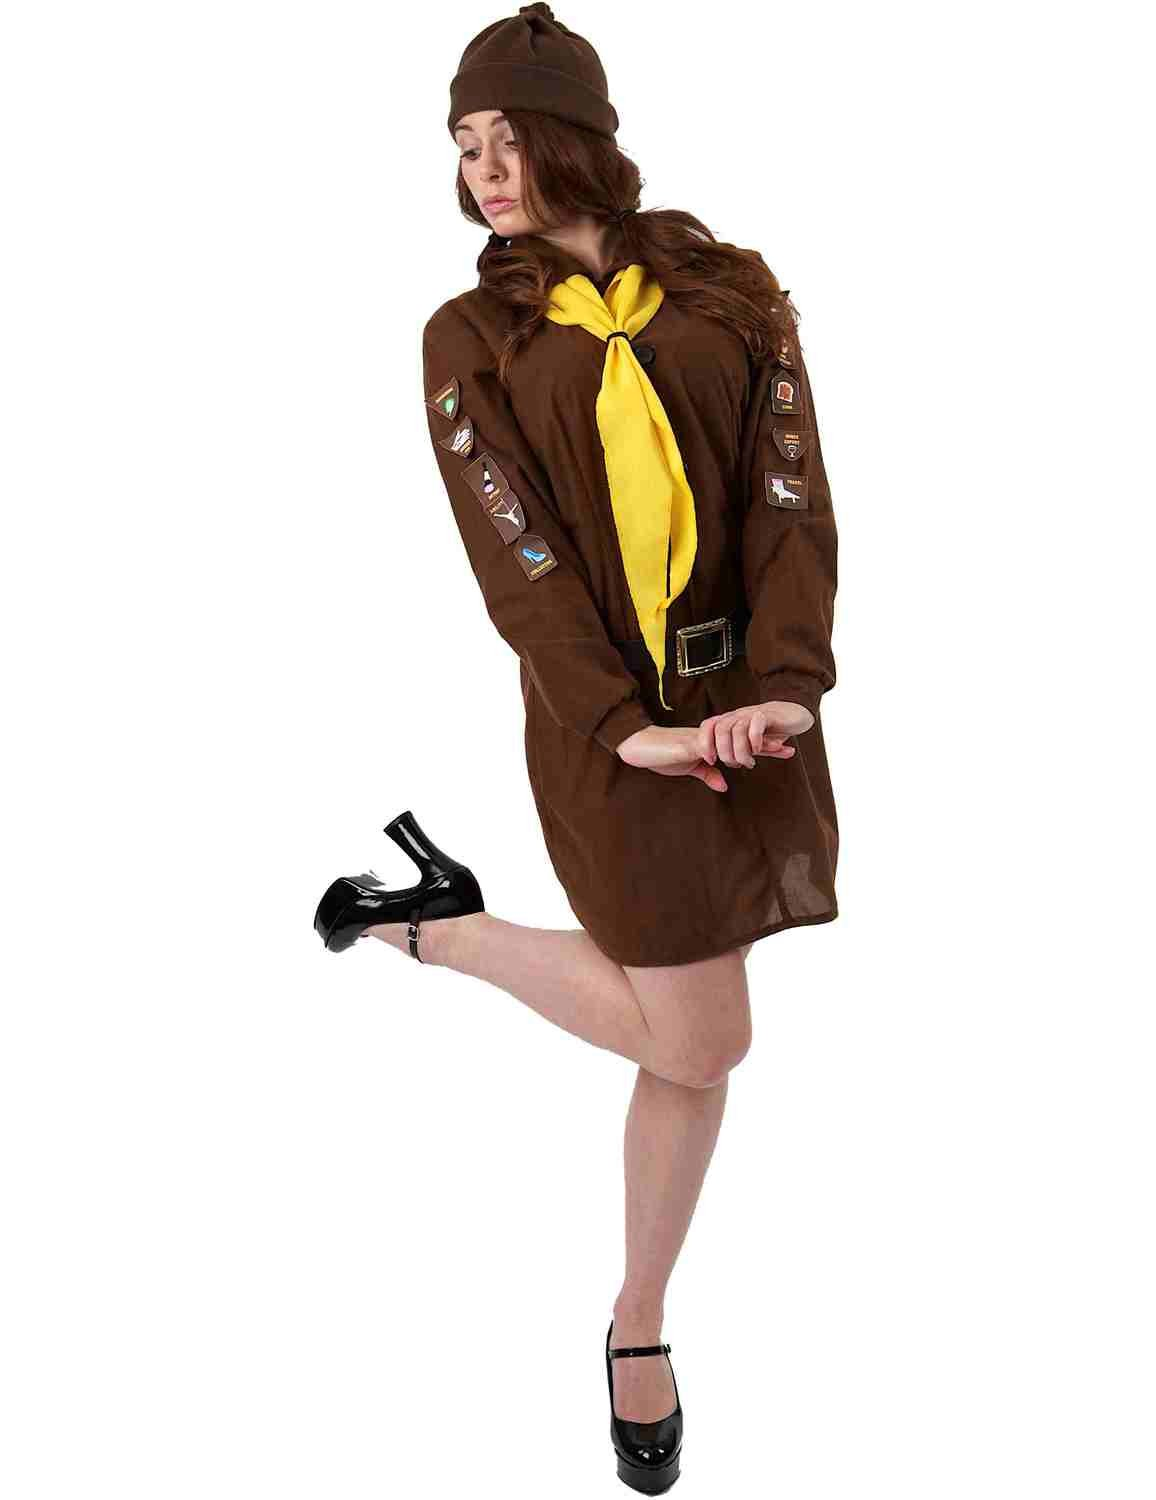 Adult Girl's Brownie Uniform Costume by Orion Costumes